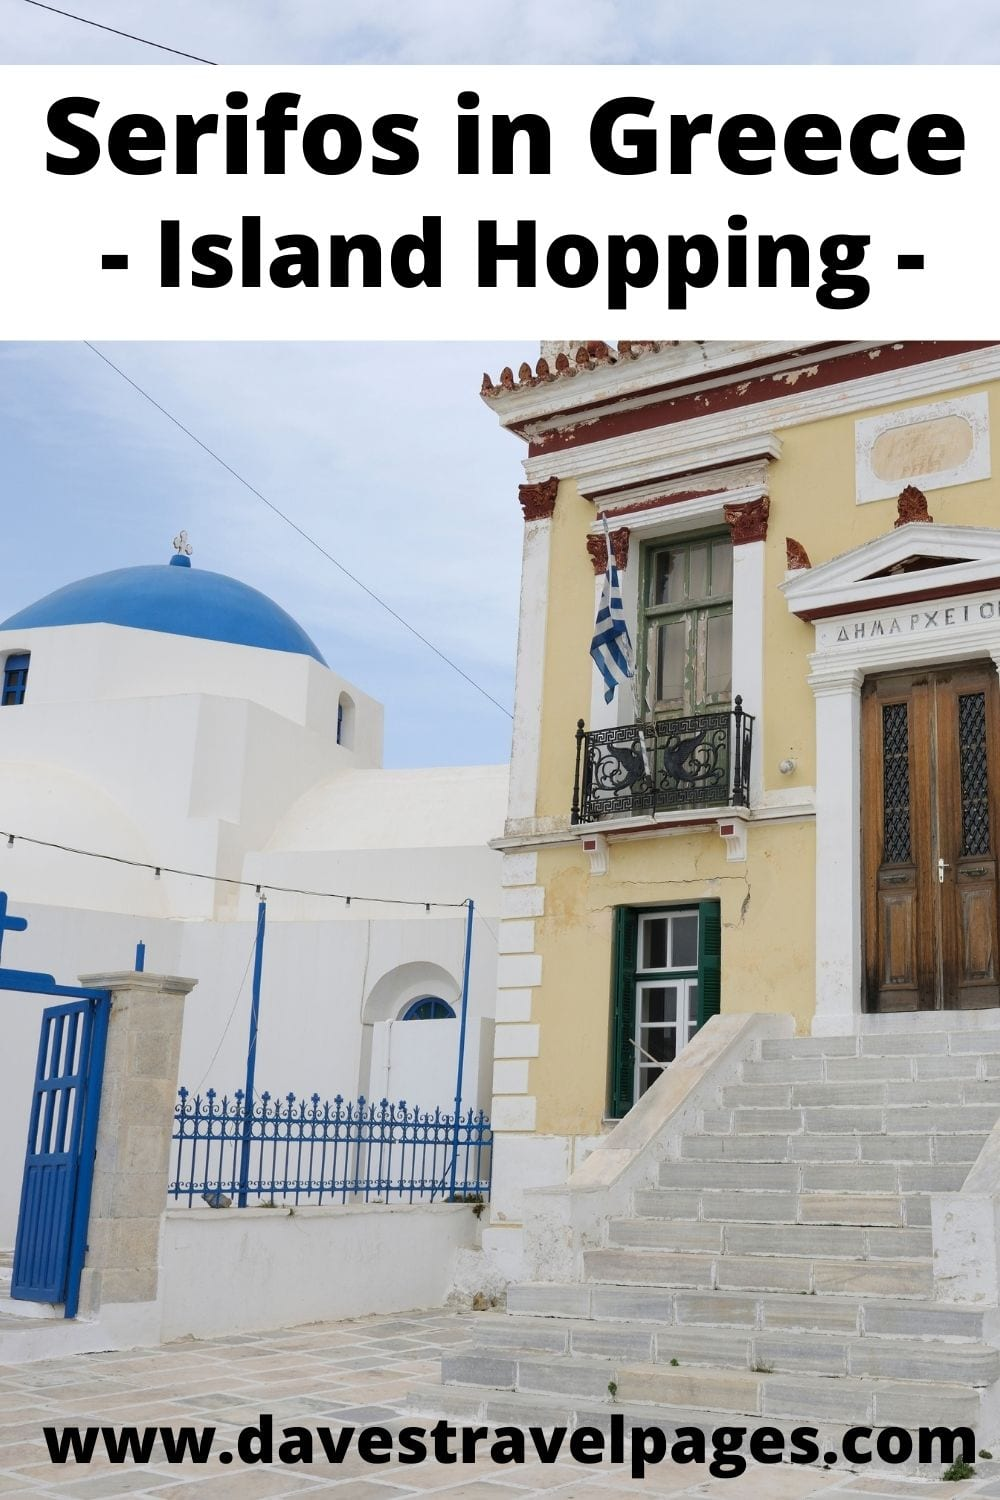 Greek island hopping from Naxos to Serifos in Greece